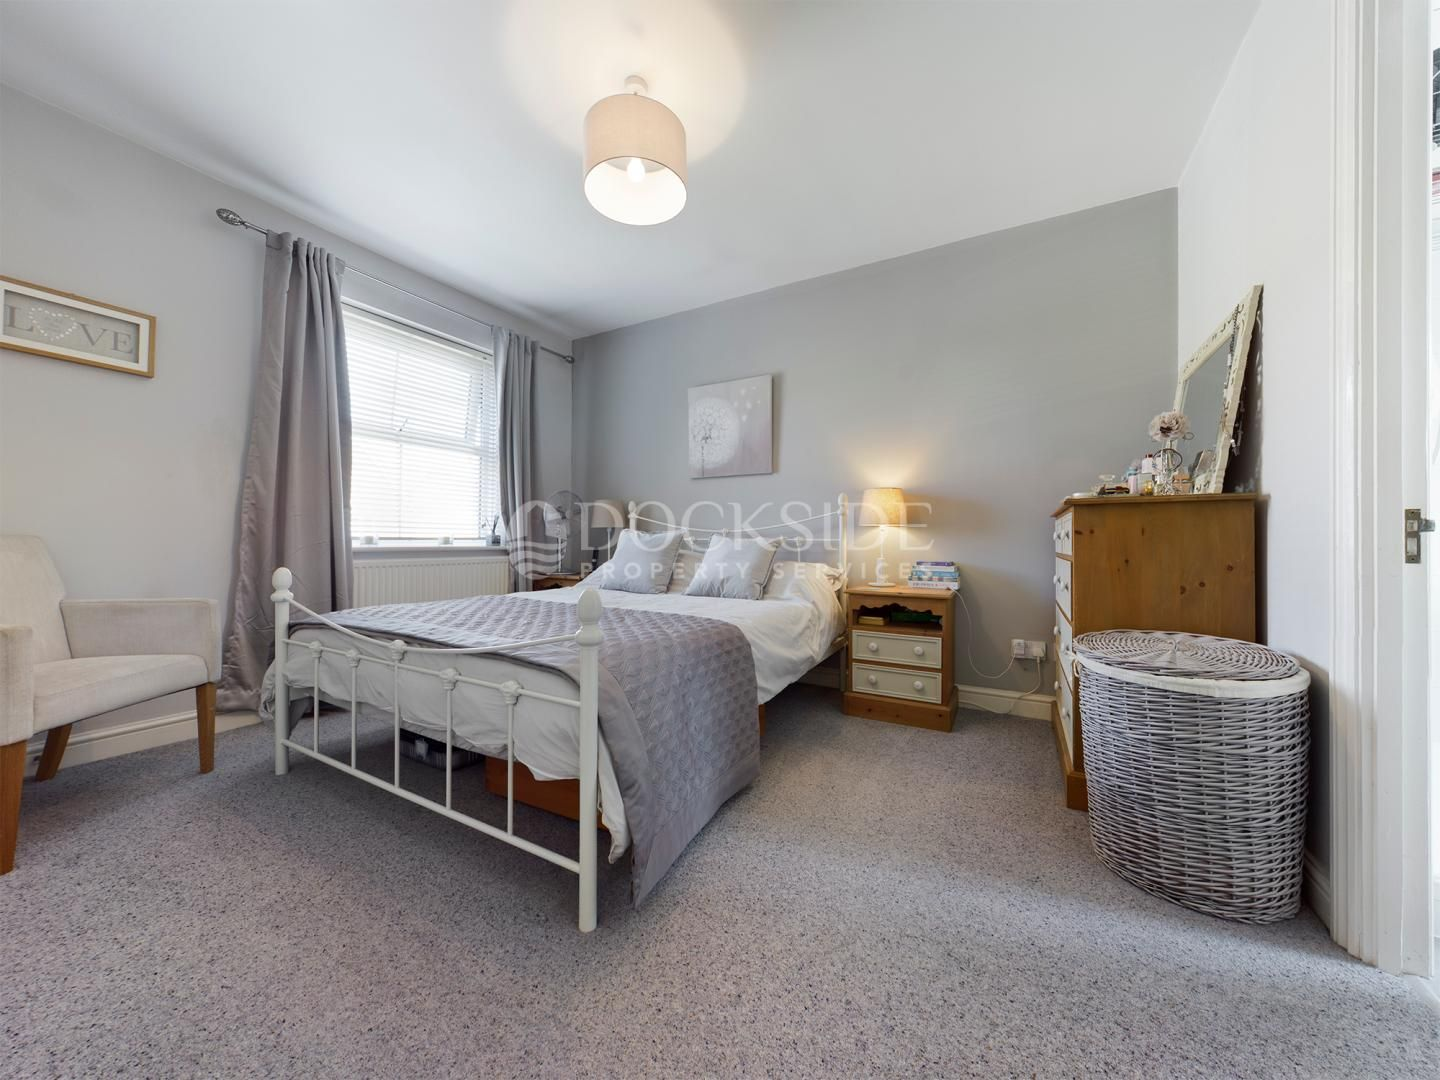 3 bed house for sale in Haven Way  - Property Image 11